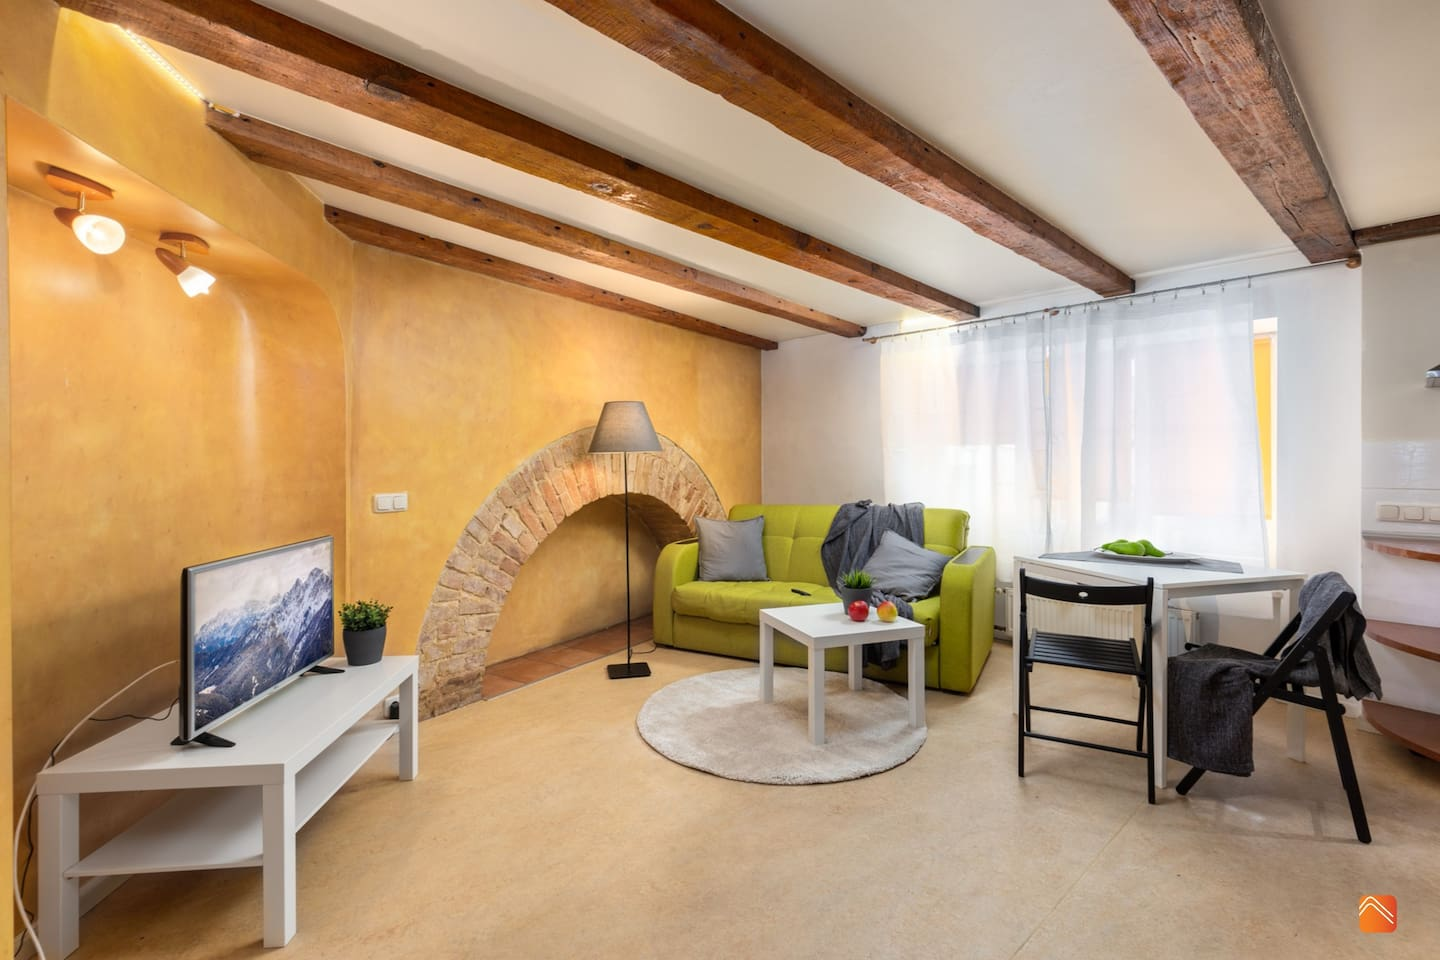 Flat with Old Town style with all necessary for comfortable stay